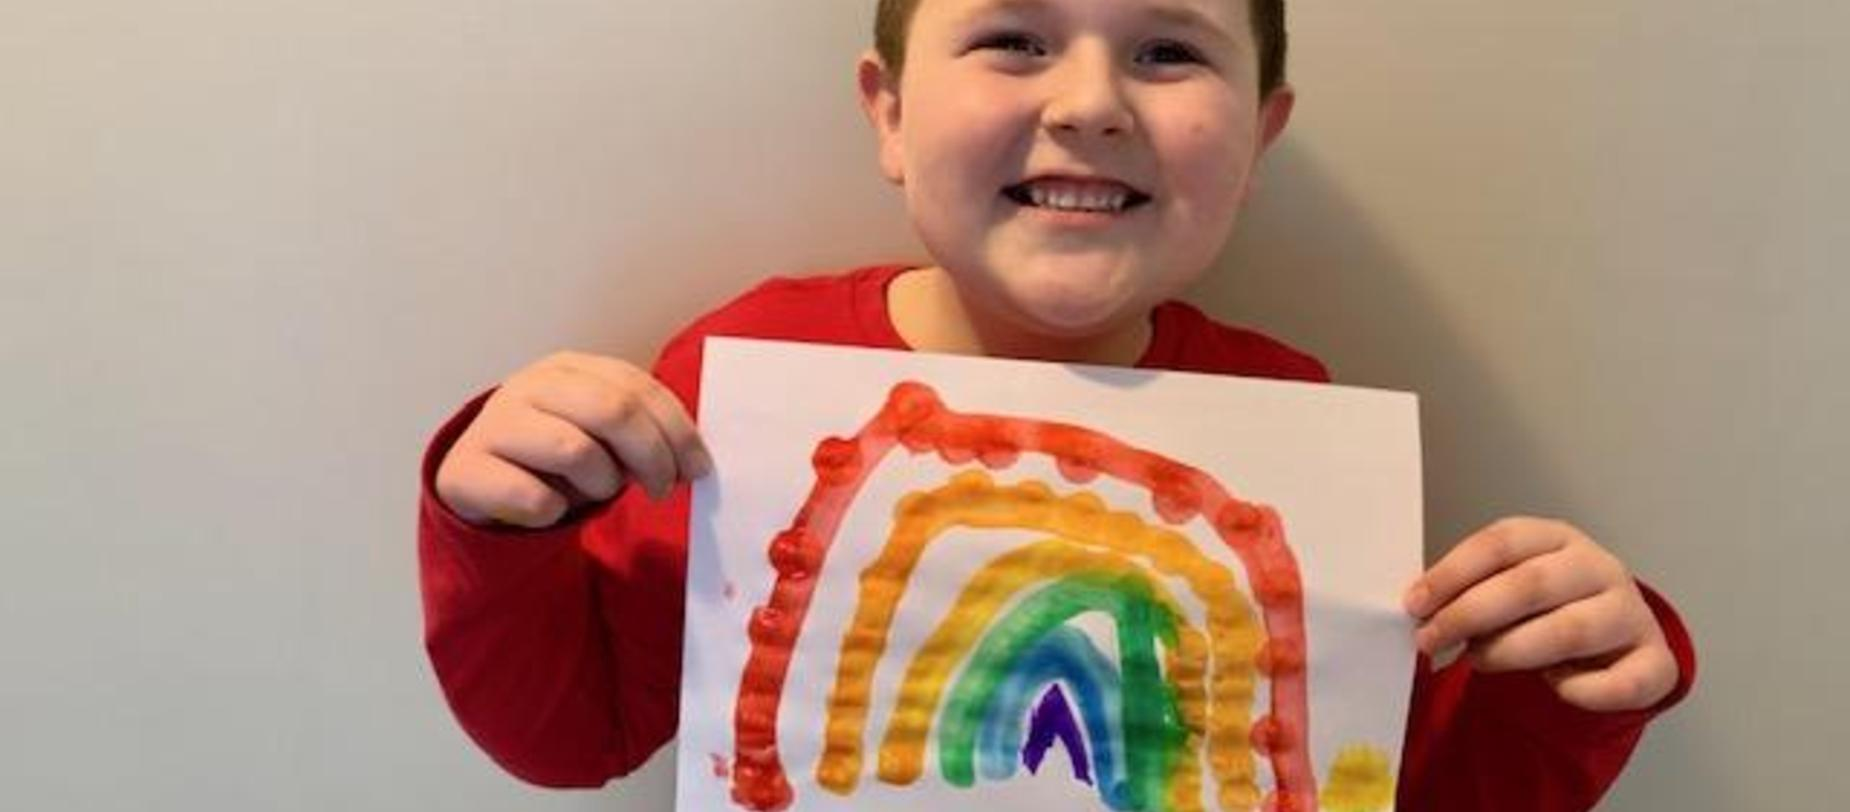 student with rainbow picture